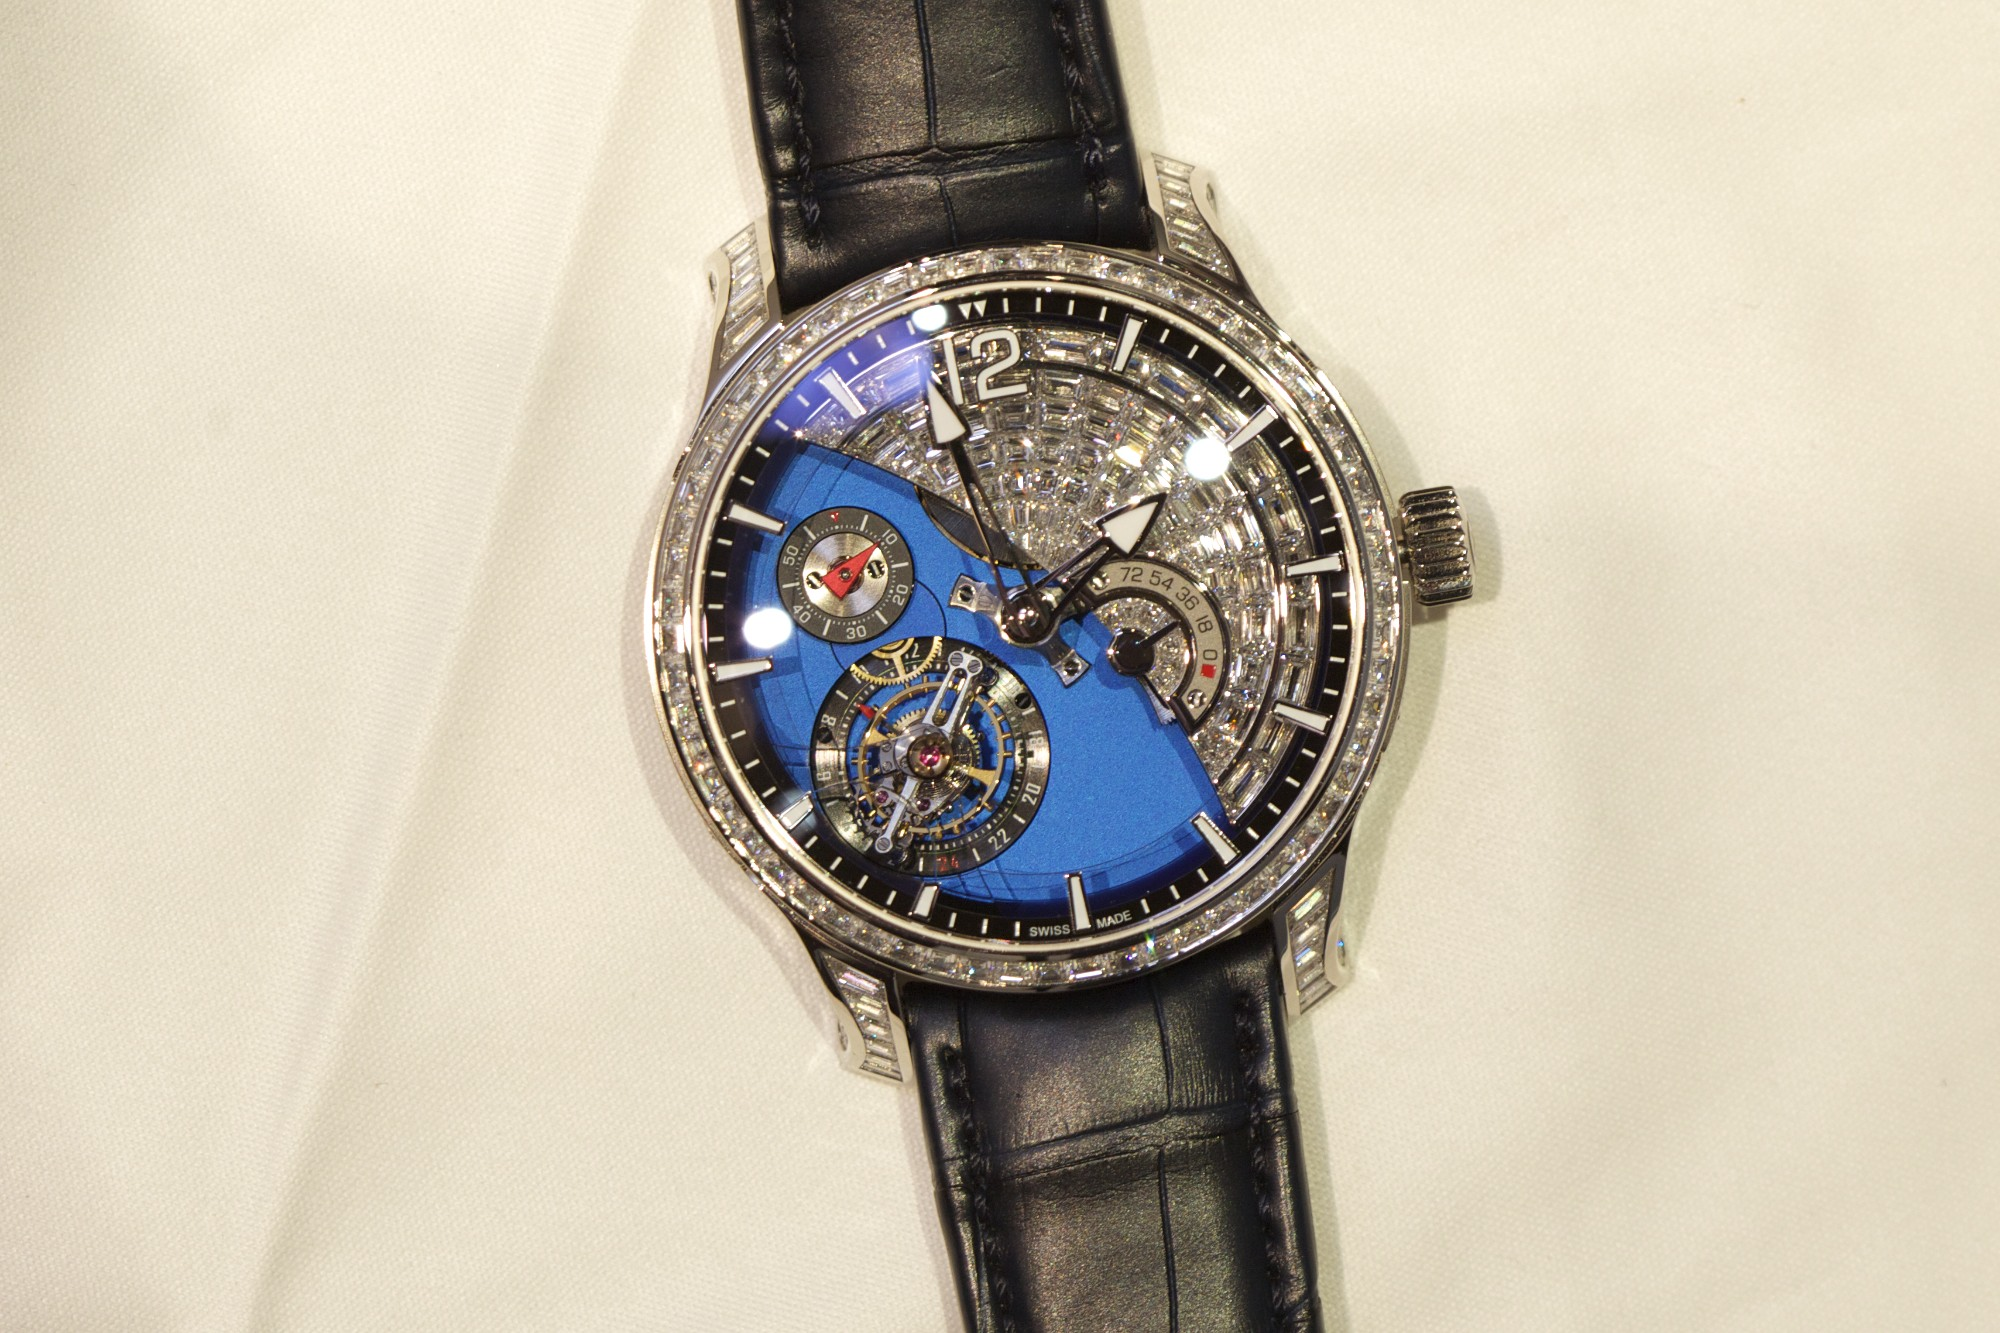 Greubel Forsey Tourbillon 24 Secondes Contemporain Sertie